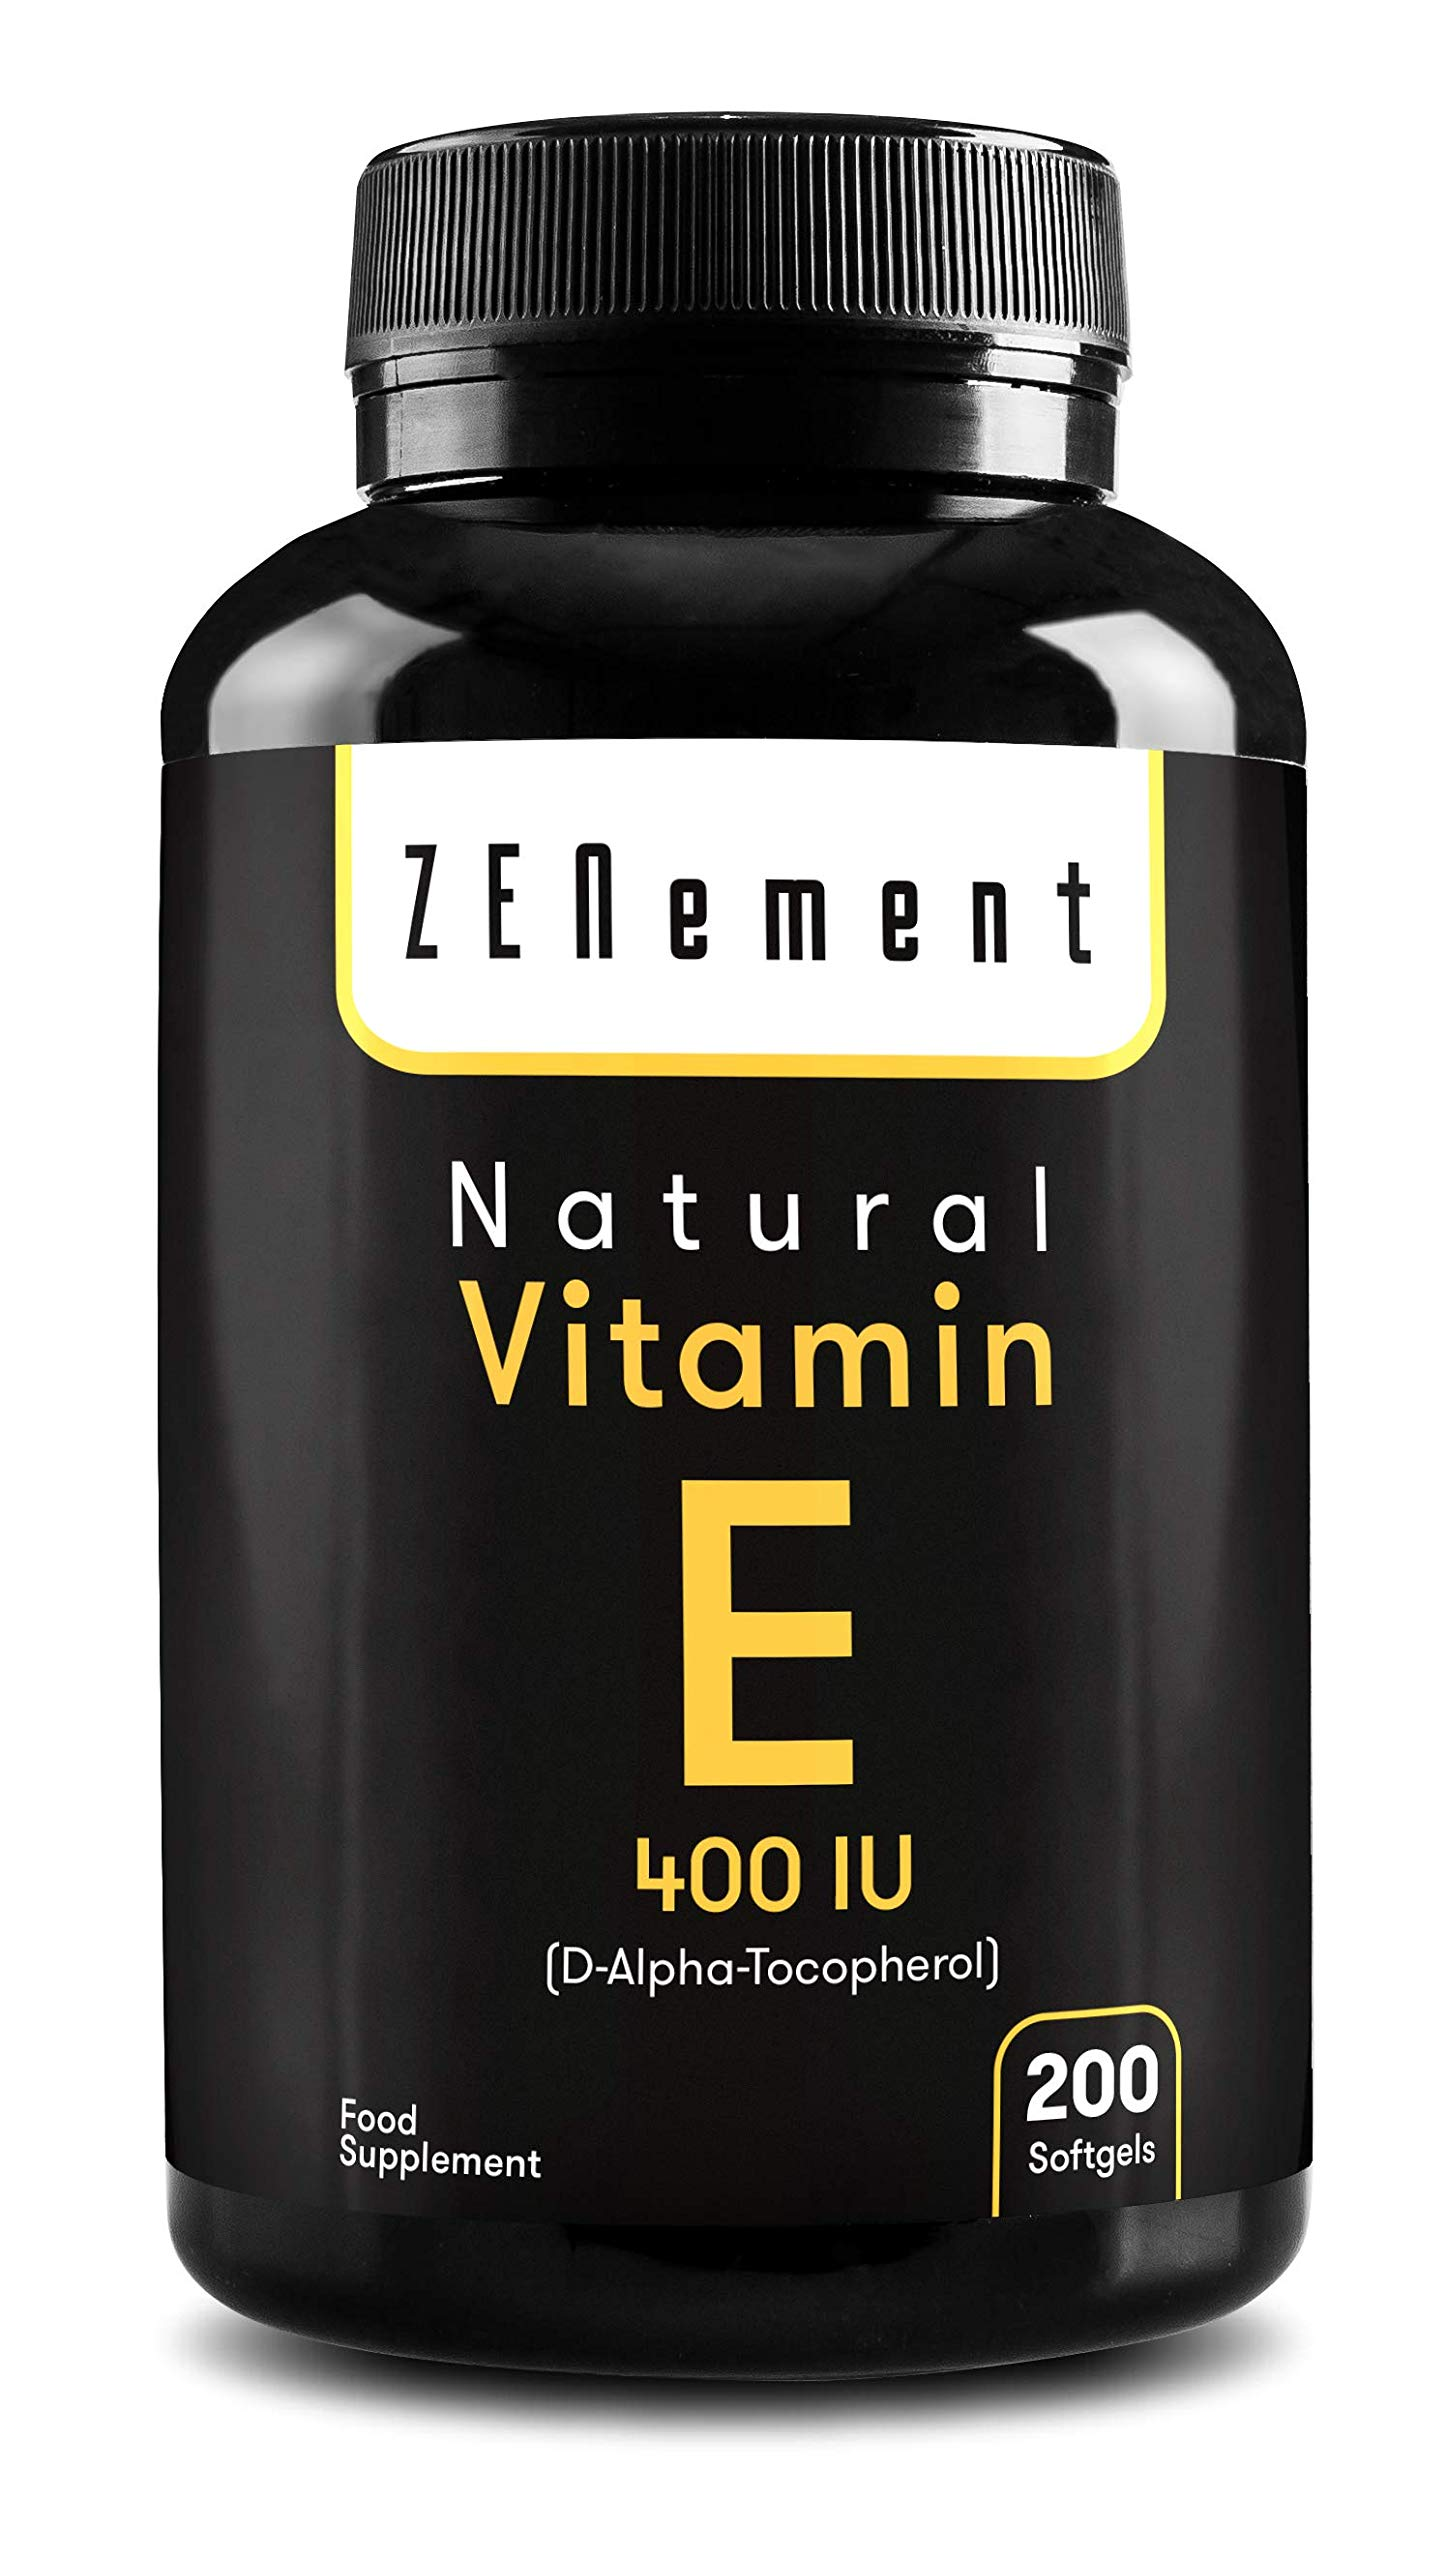 Natural Vitamin E - 400 IU (D-Alpha-Tocopherol) | 200 Softgels: More Than 6 Month Supply | Antioxidant That Protect Cells from Damage | Non-GMO | by Zenement